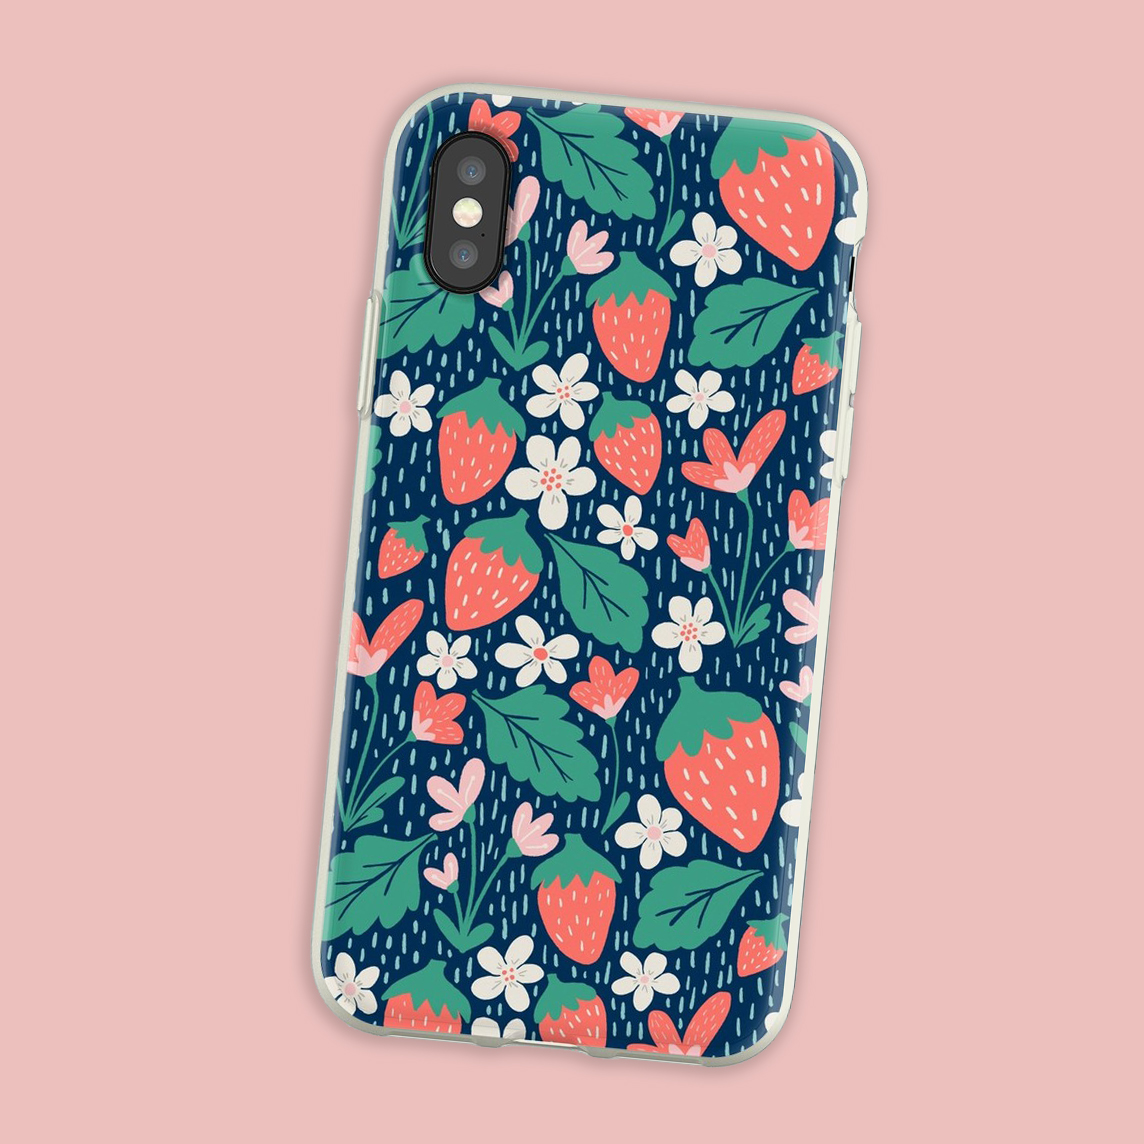 I take my phone everywhere so it needs to be protected and have a cute case to dress up with the season. This the perfect spring and summer iphone cover to celebrate the season